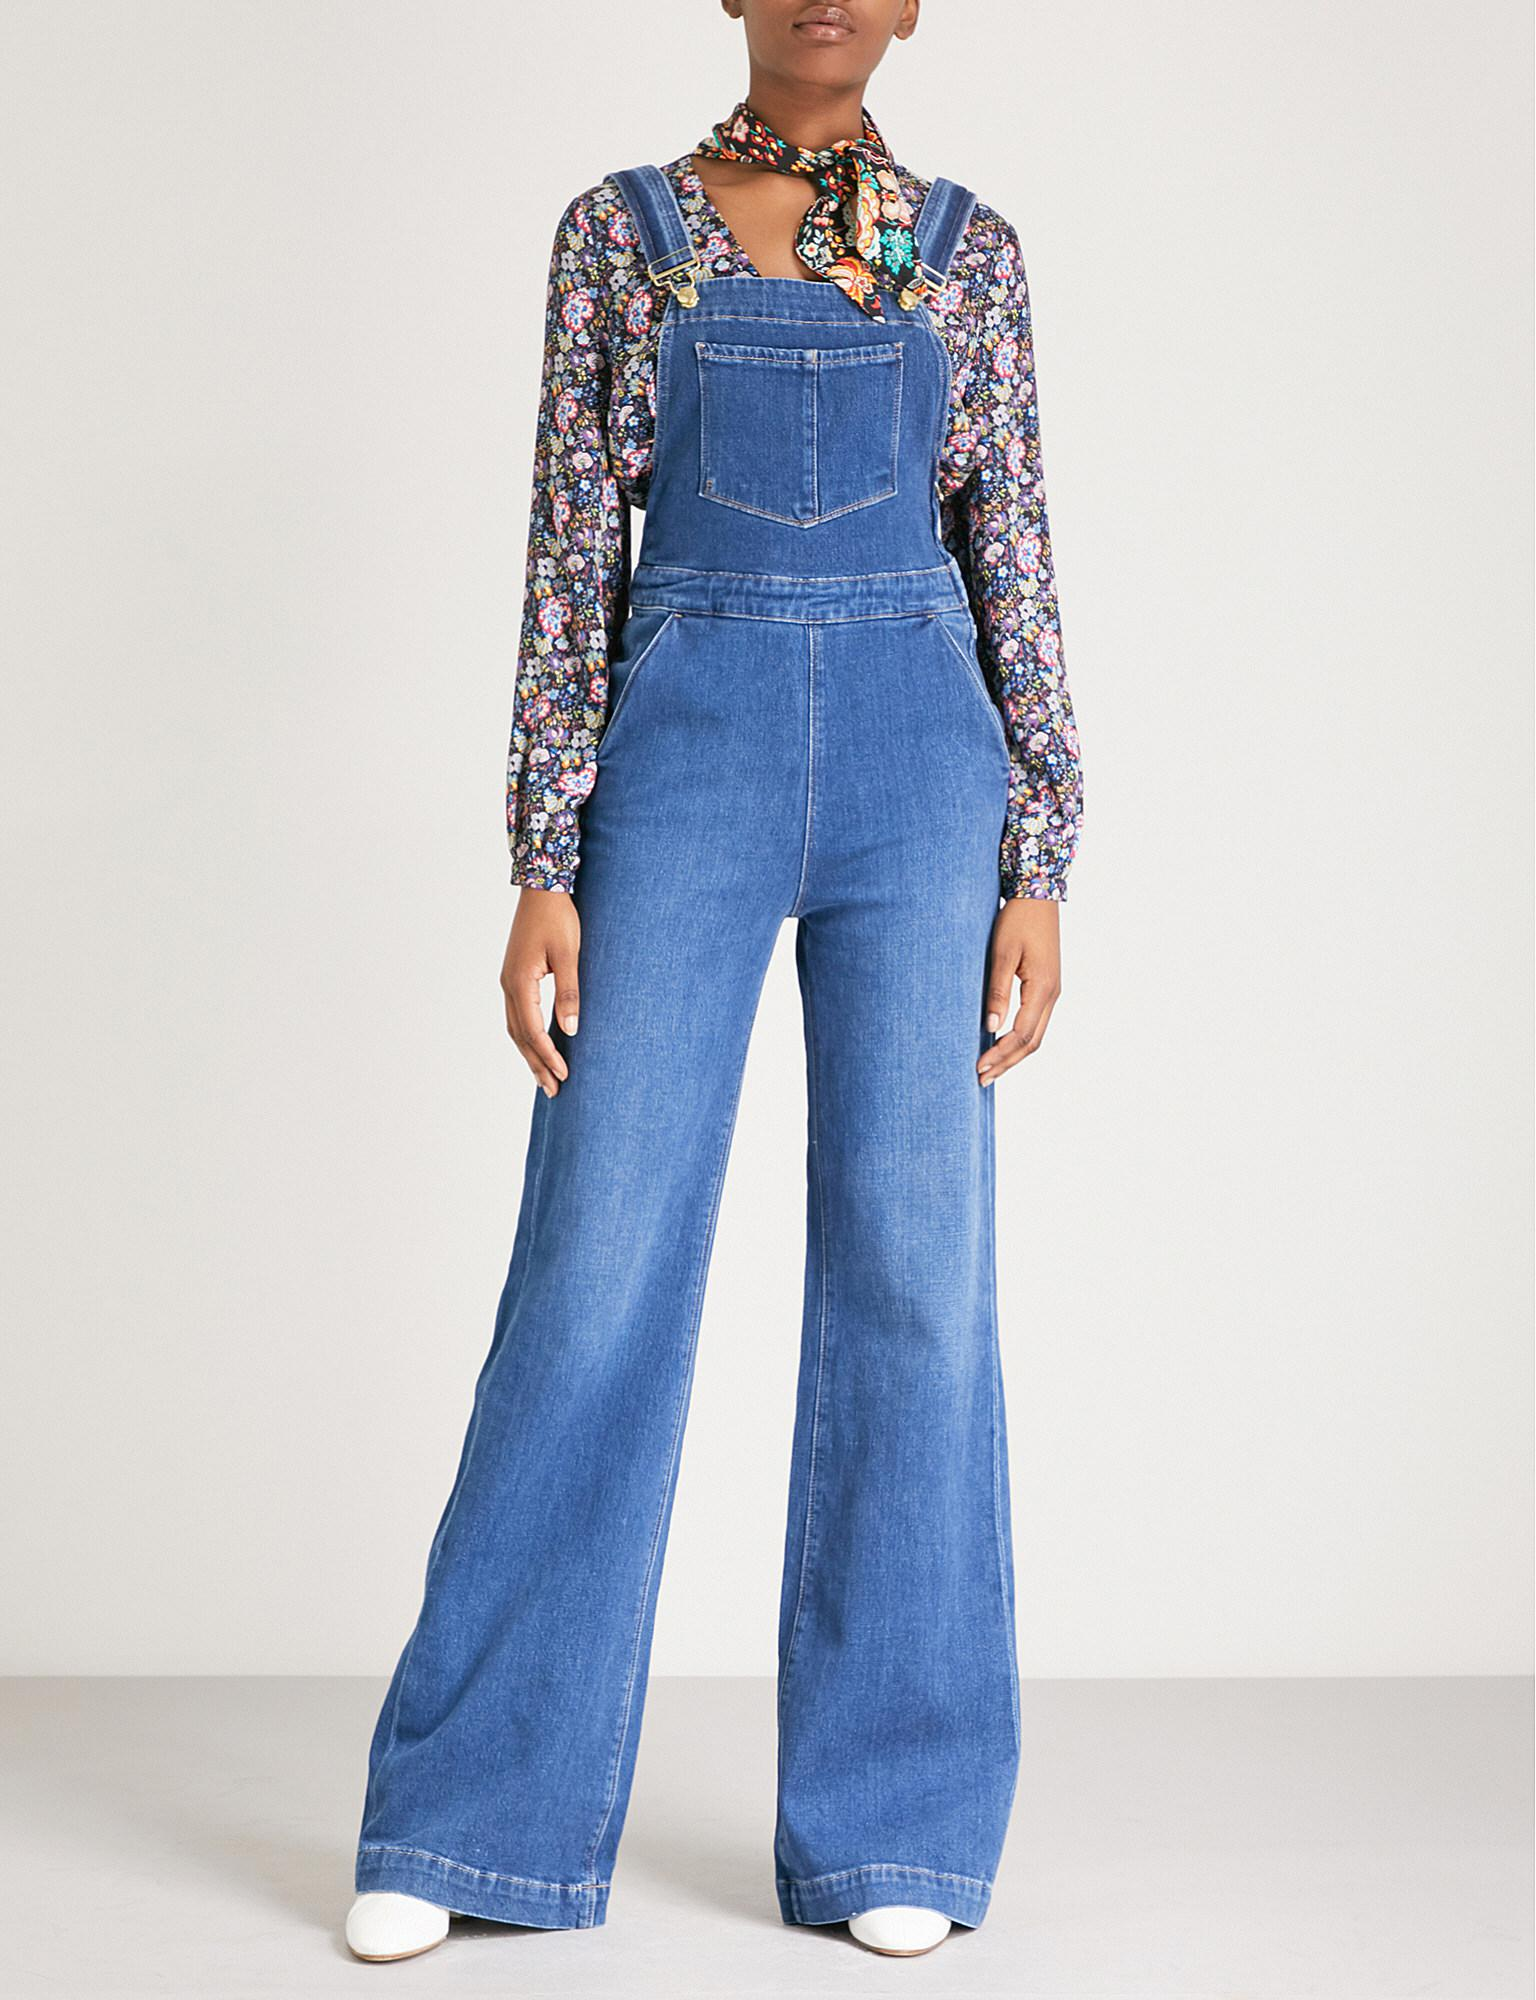 Lyst - Frame Palazzo-leg Denim Dungarees in Blue